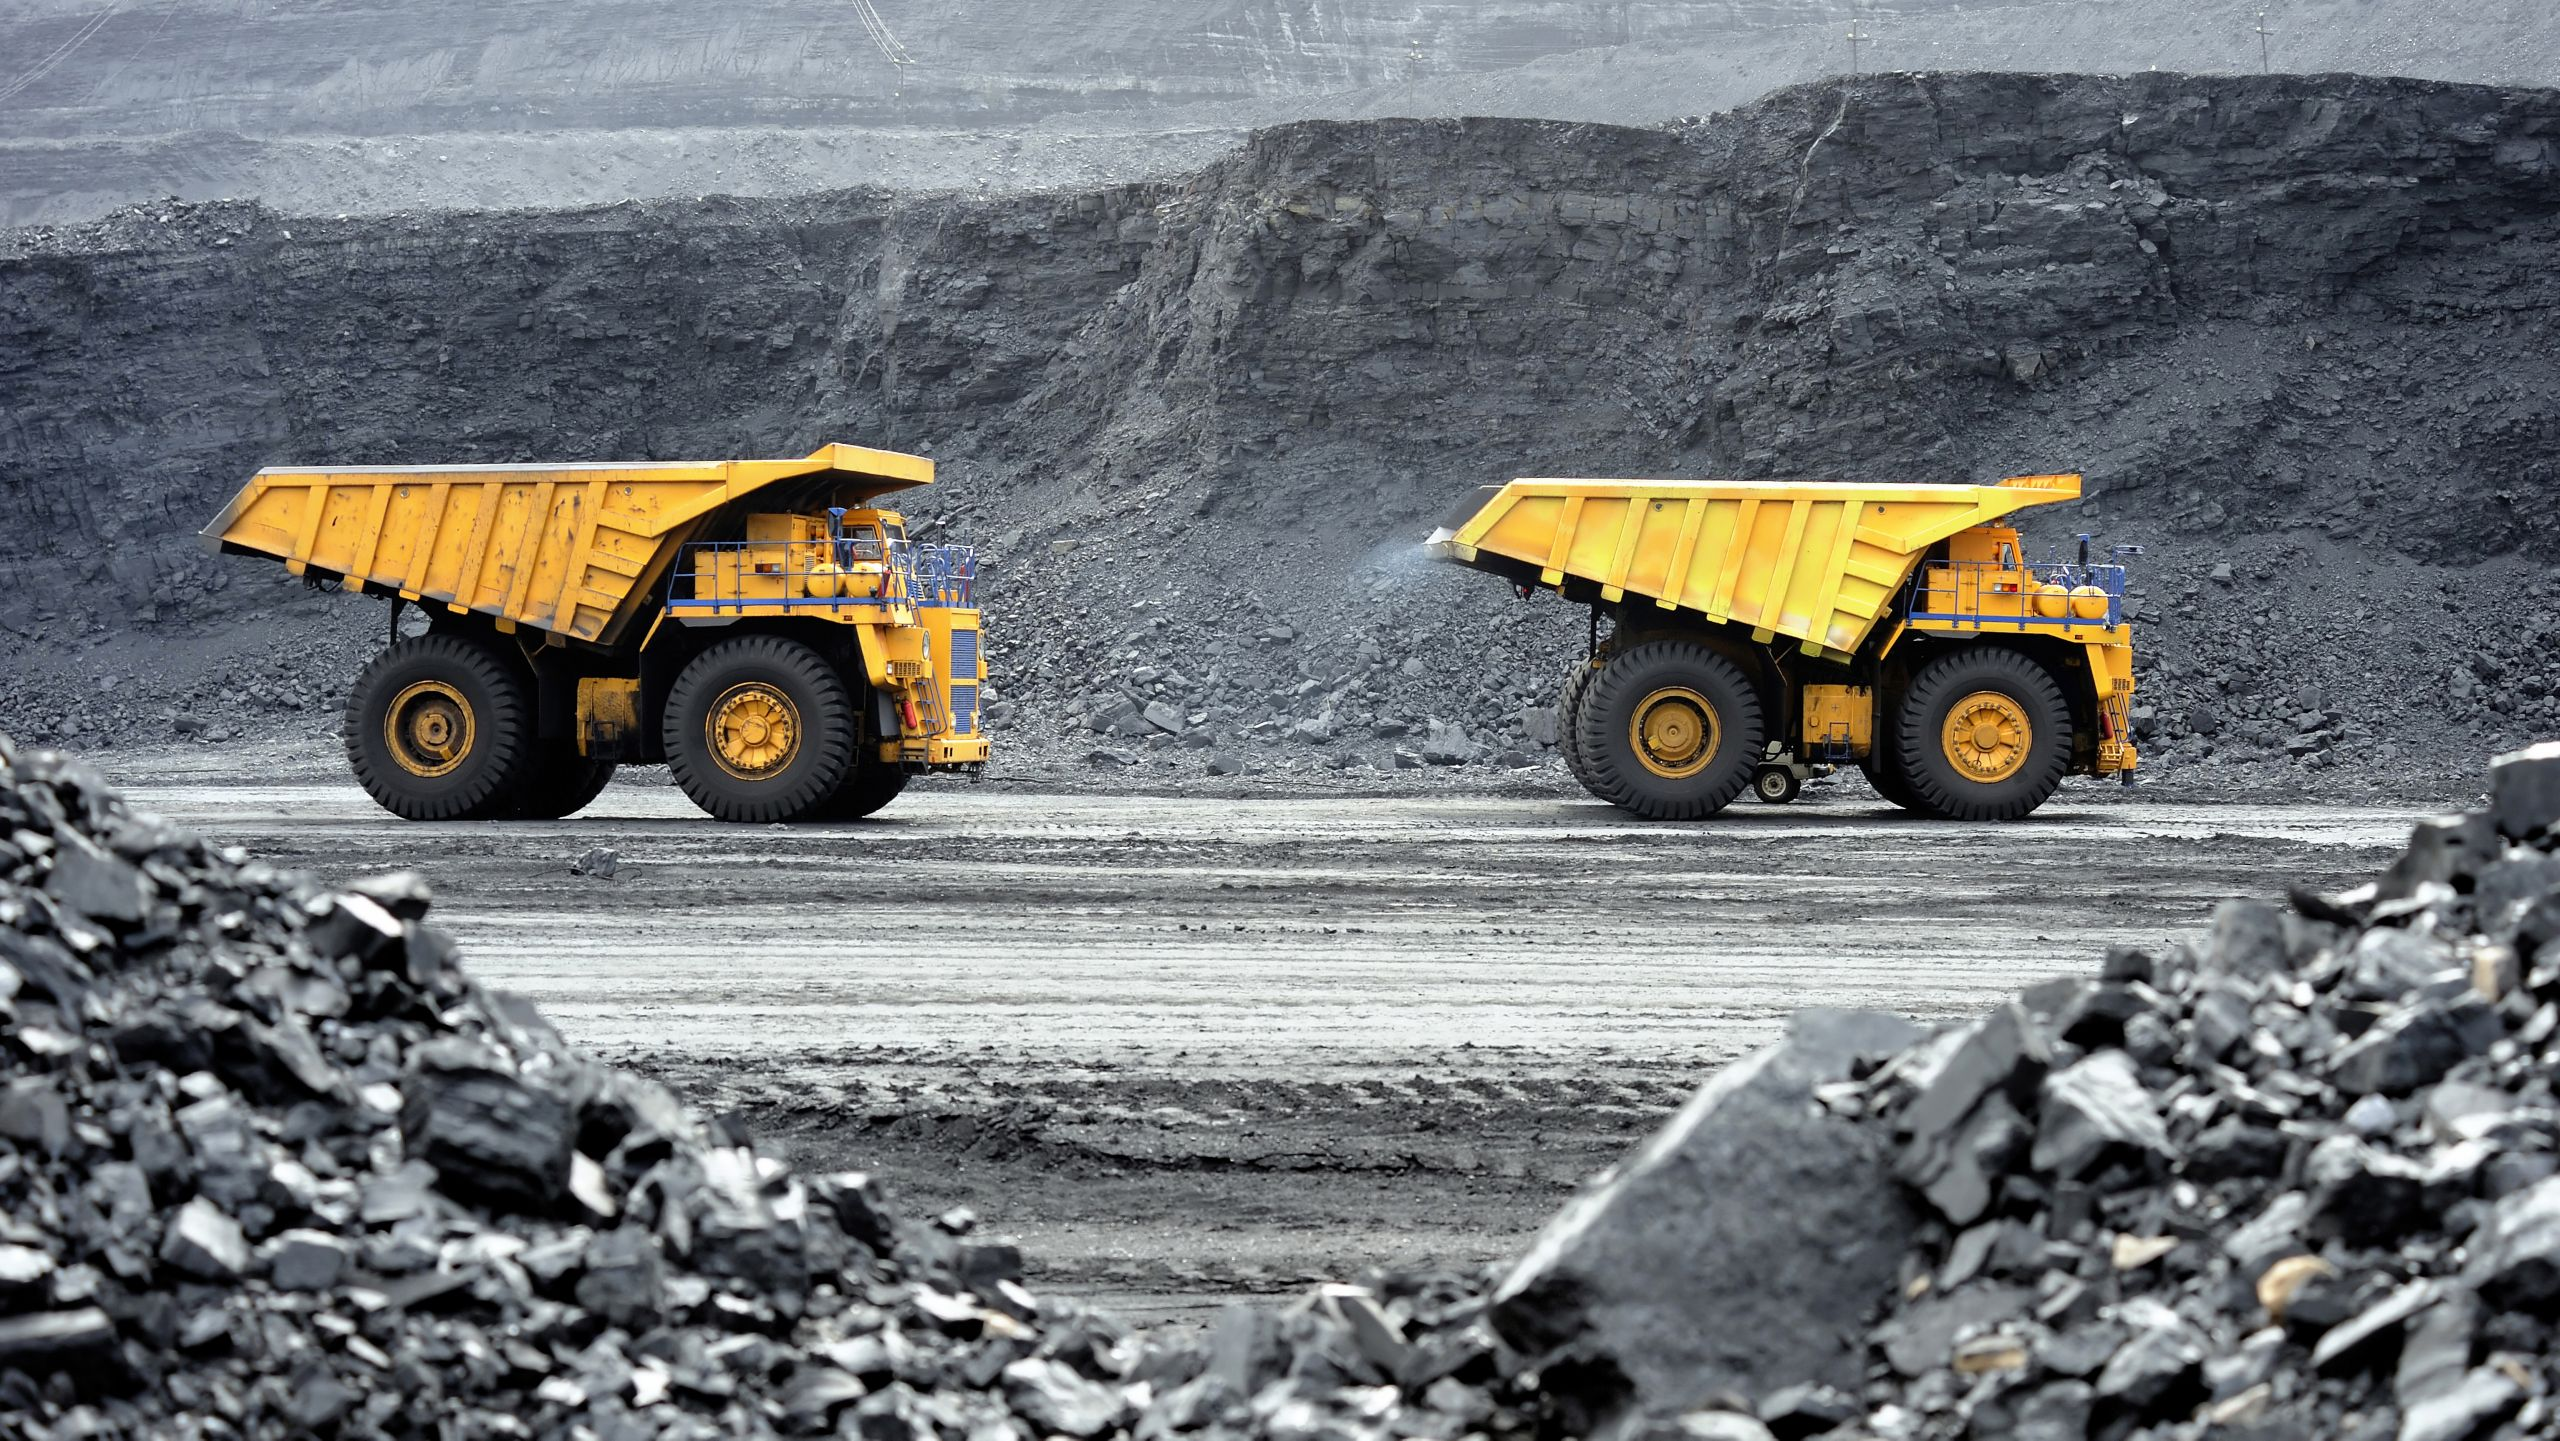 Two dump trucks driving at a mining site